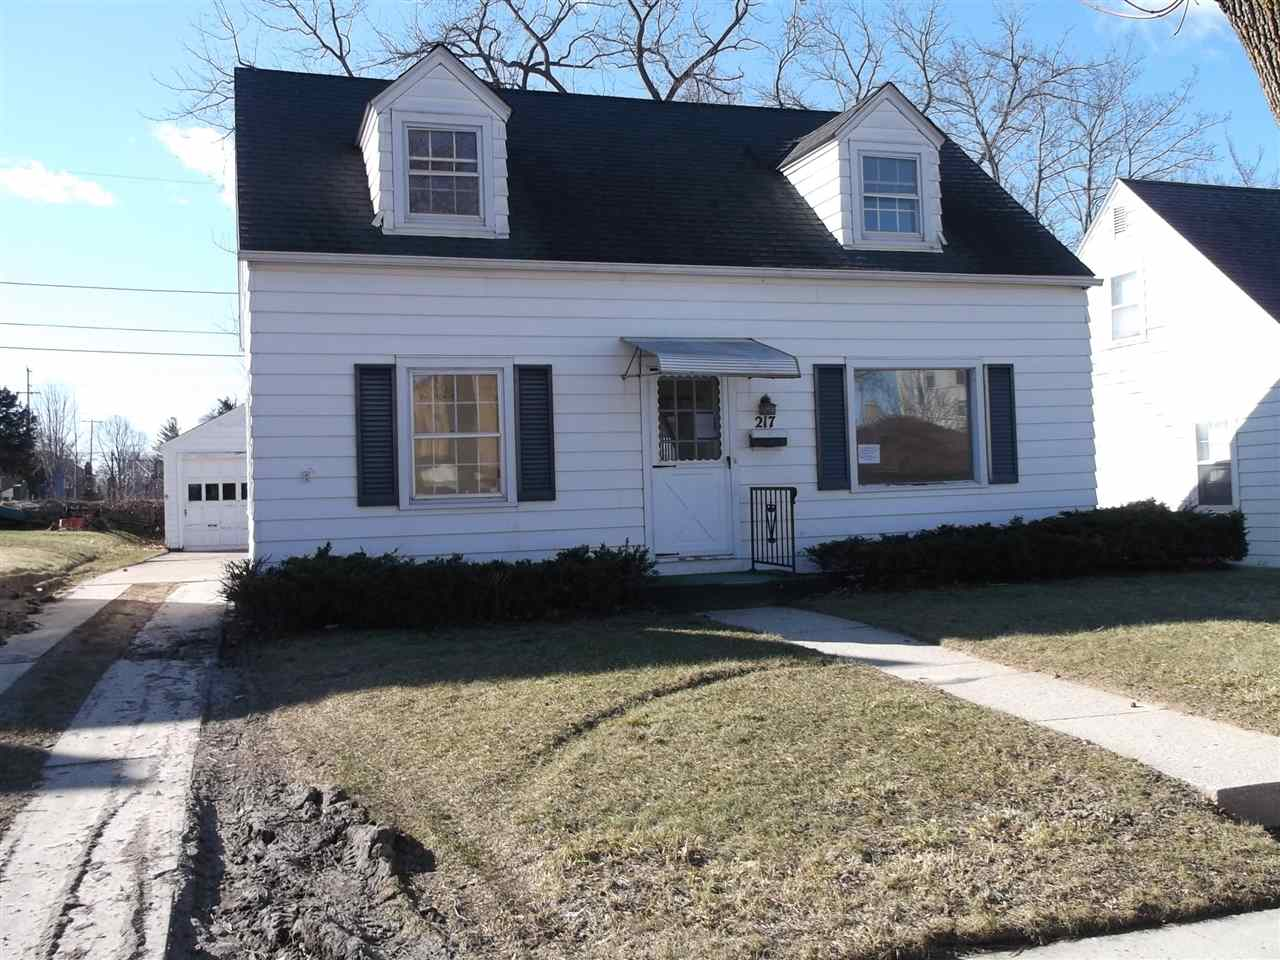 217 Sycamore St, West Bend, WI 53095